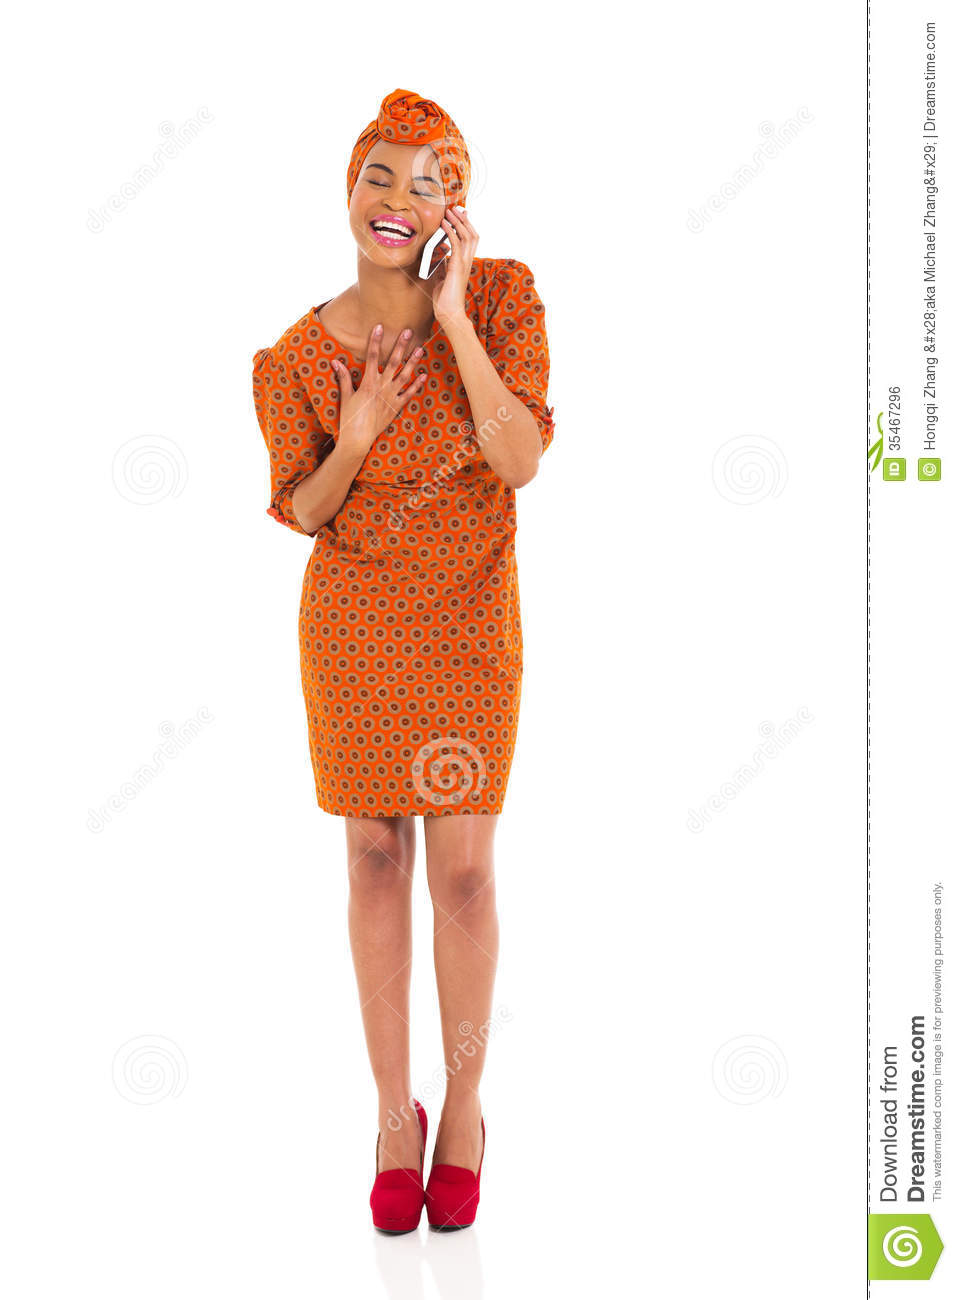 african-woman-cell-phone-happy-young-traditional-attire-talking-35467296.jpg